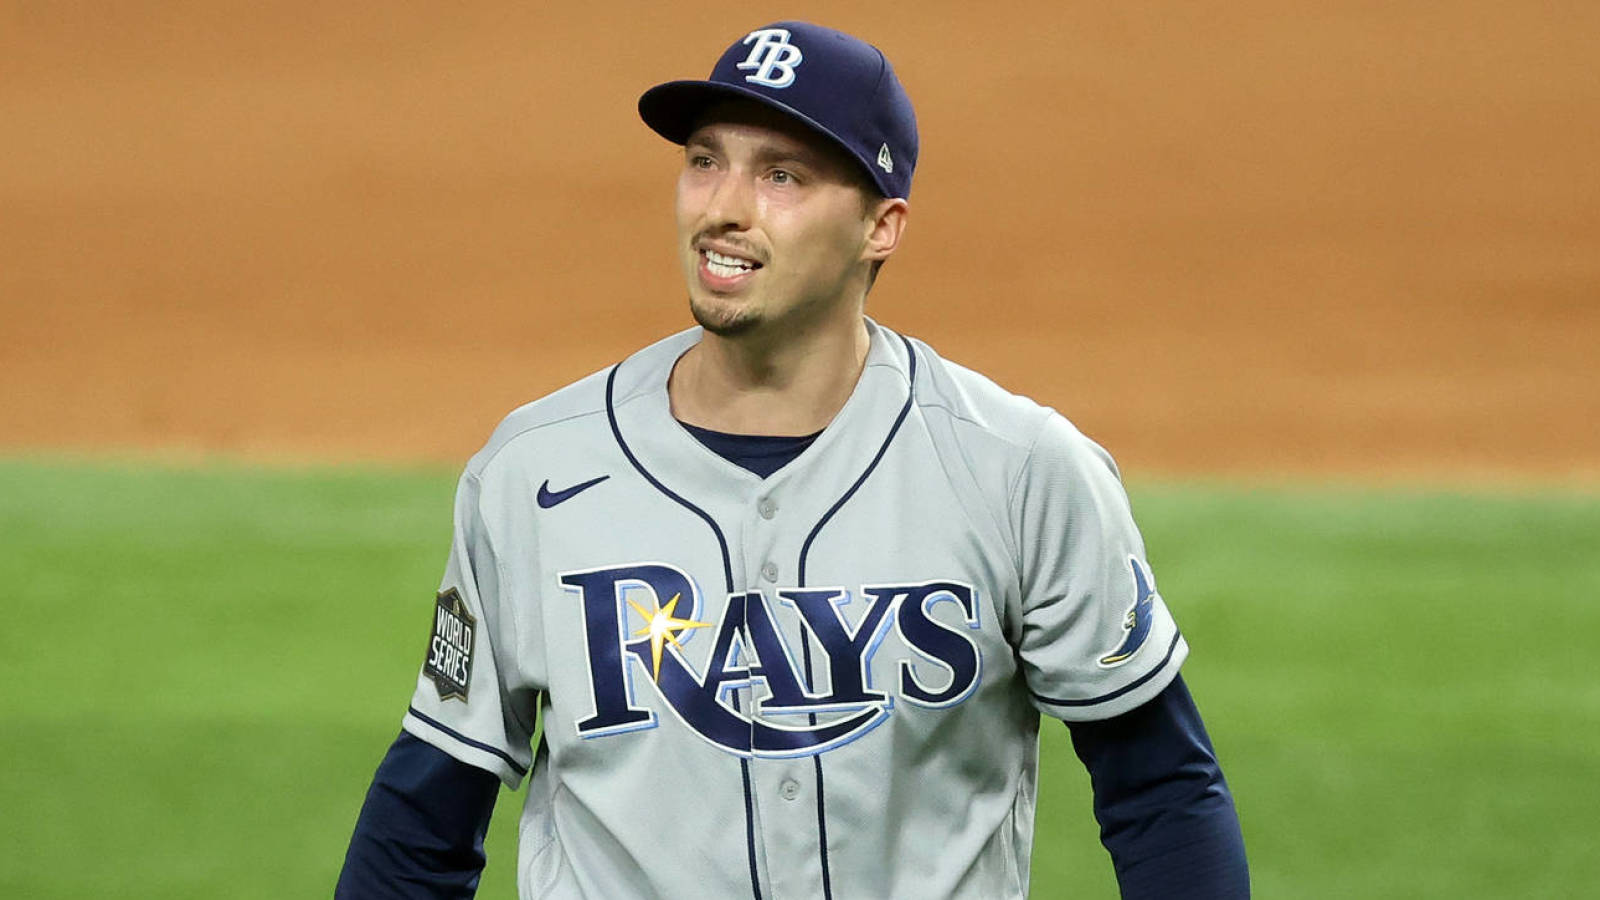 Rays to start Blake Snell in World Series Game 6